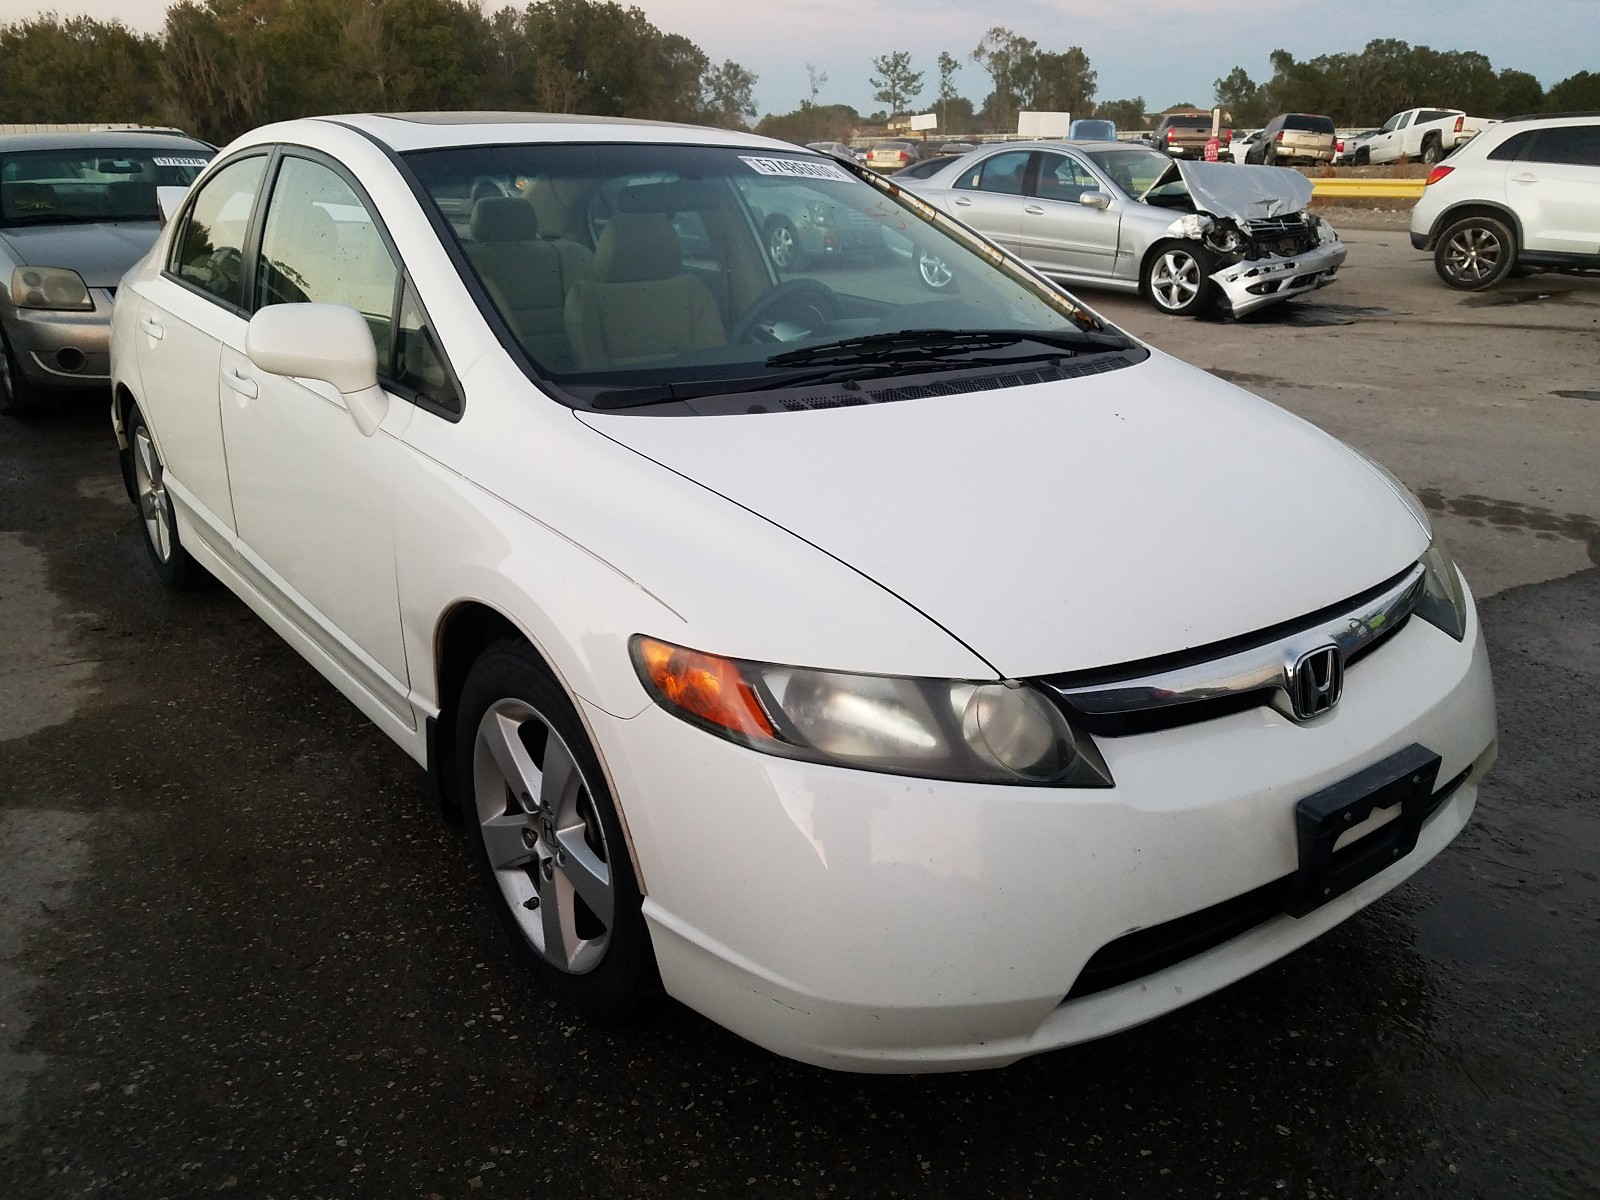 2008 Honda Civic Ex For Sale At Copart Riverview Fl Lot 57486600 Salvagereseller Com